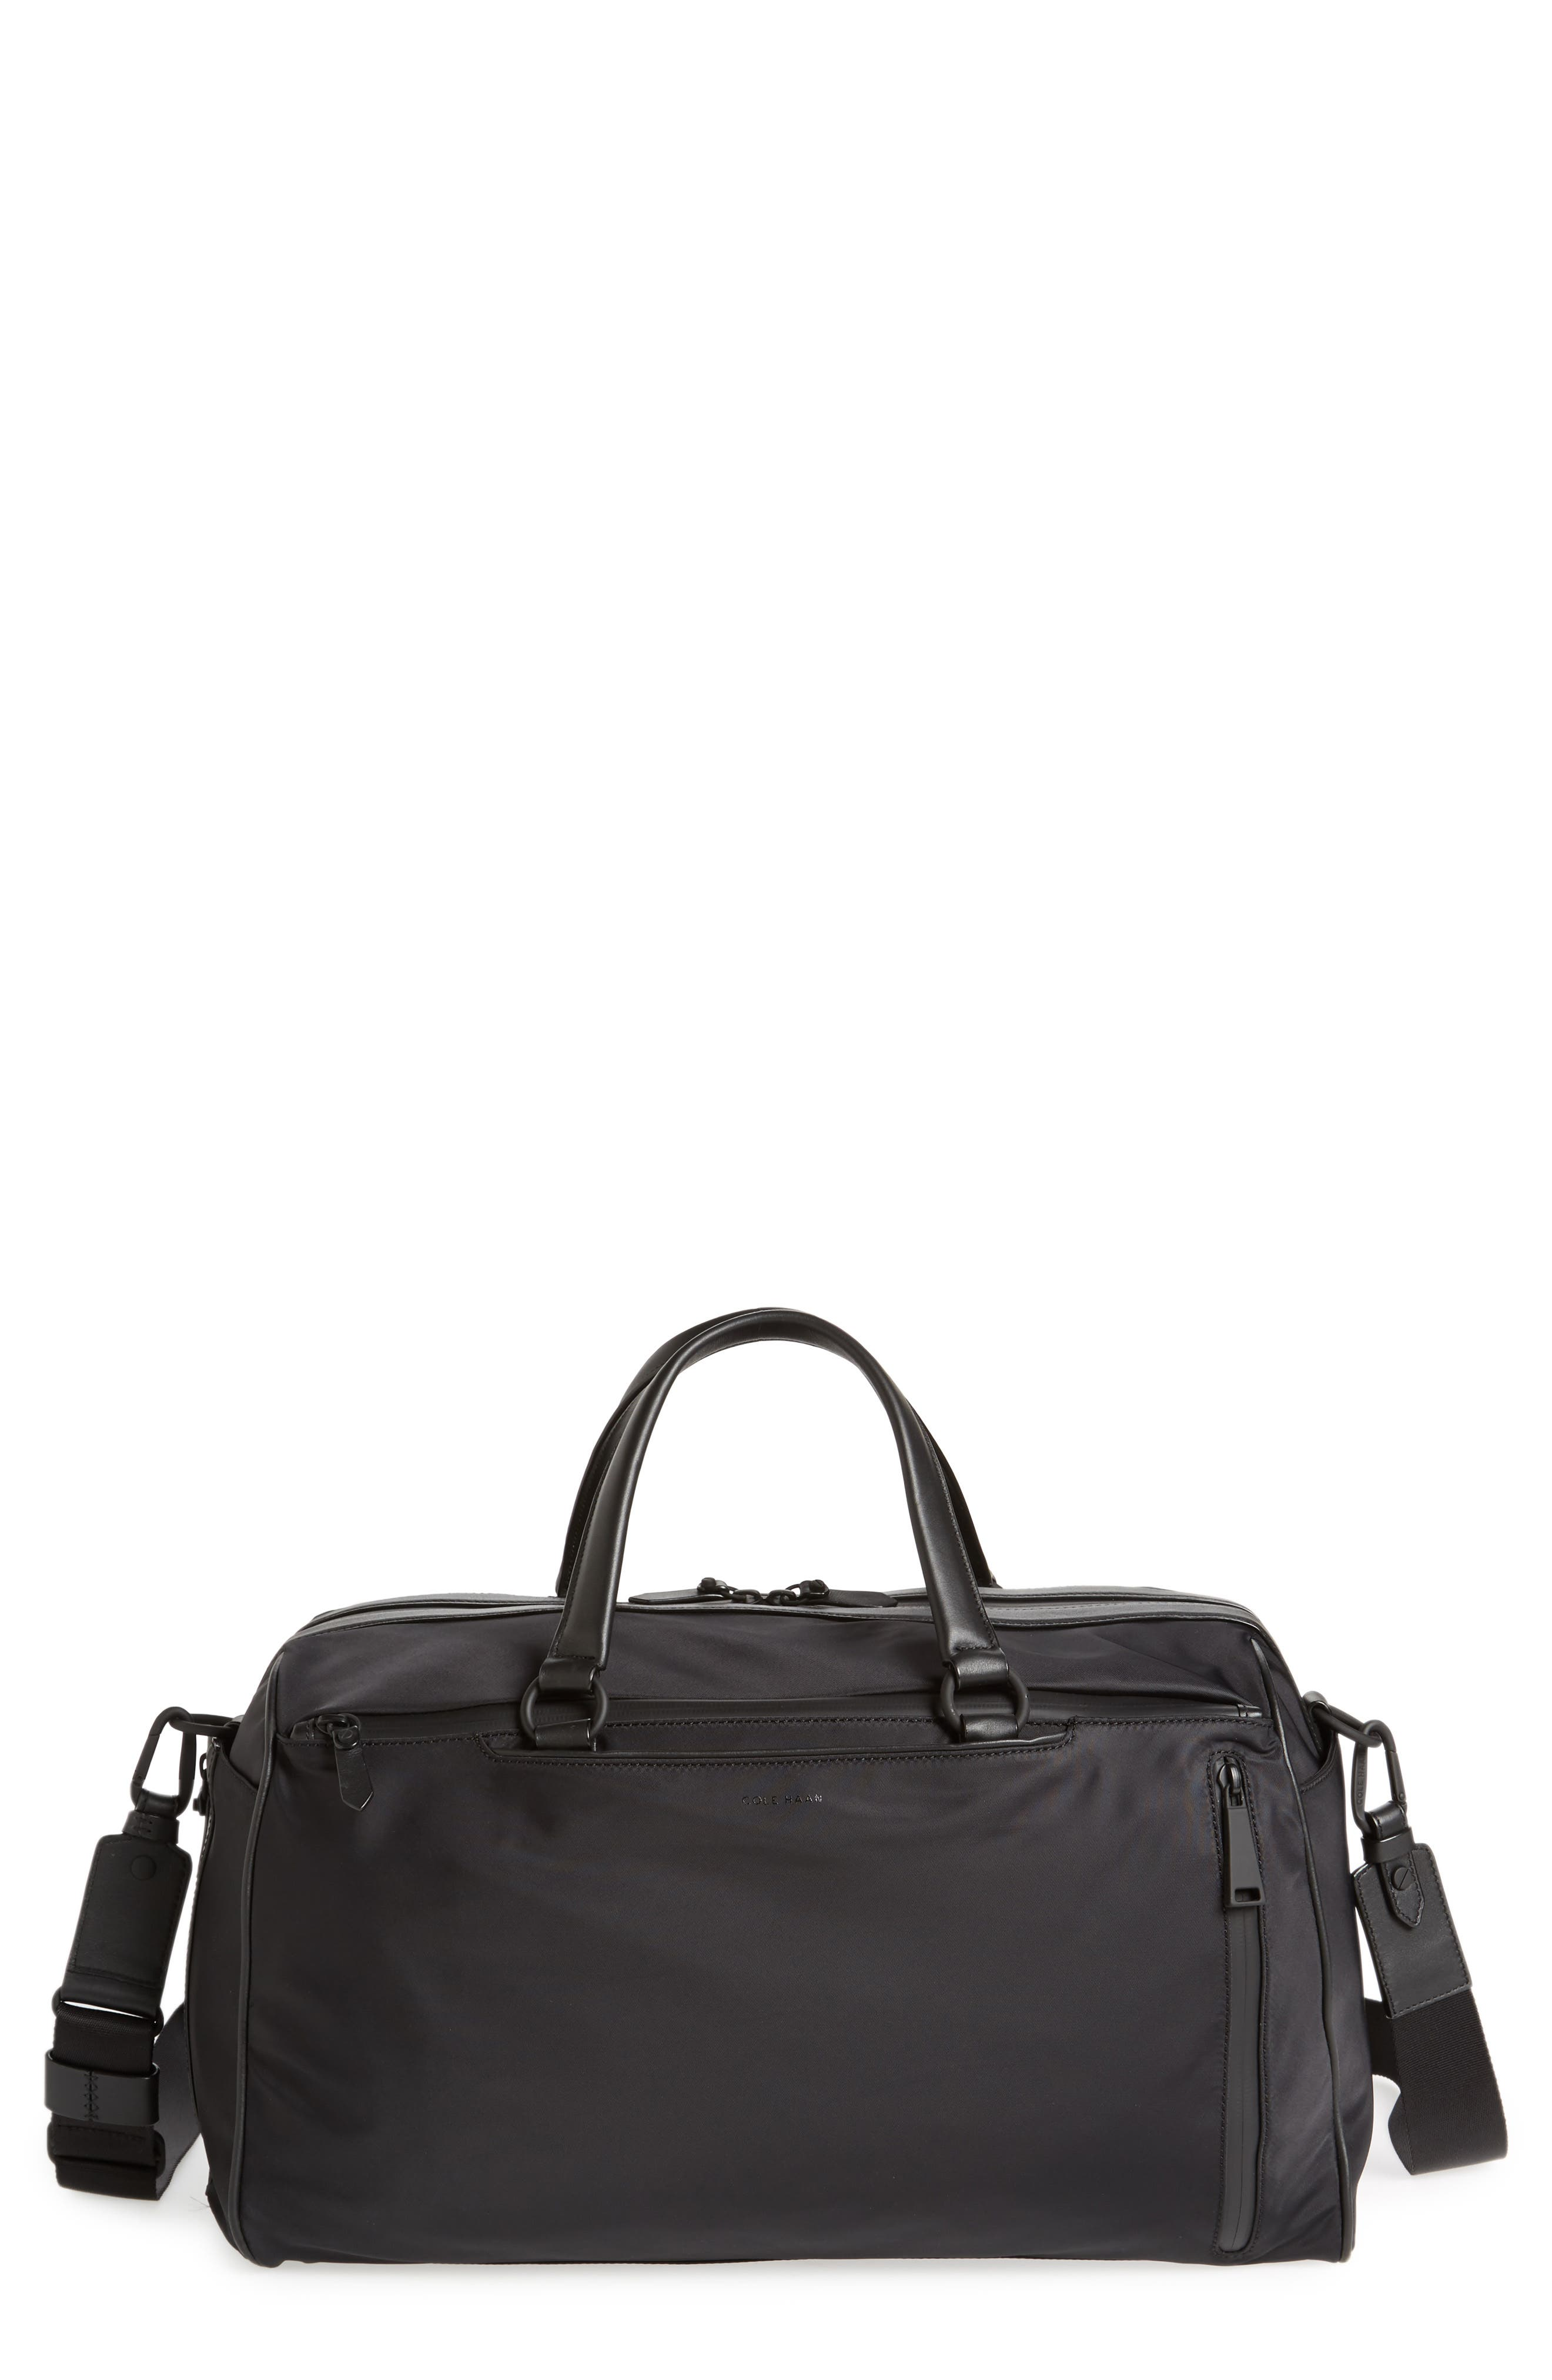 Alternate Image 1 Selected - Cole Haan Everyday Nylon Duffel Bag